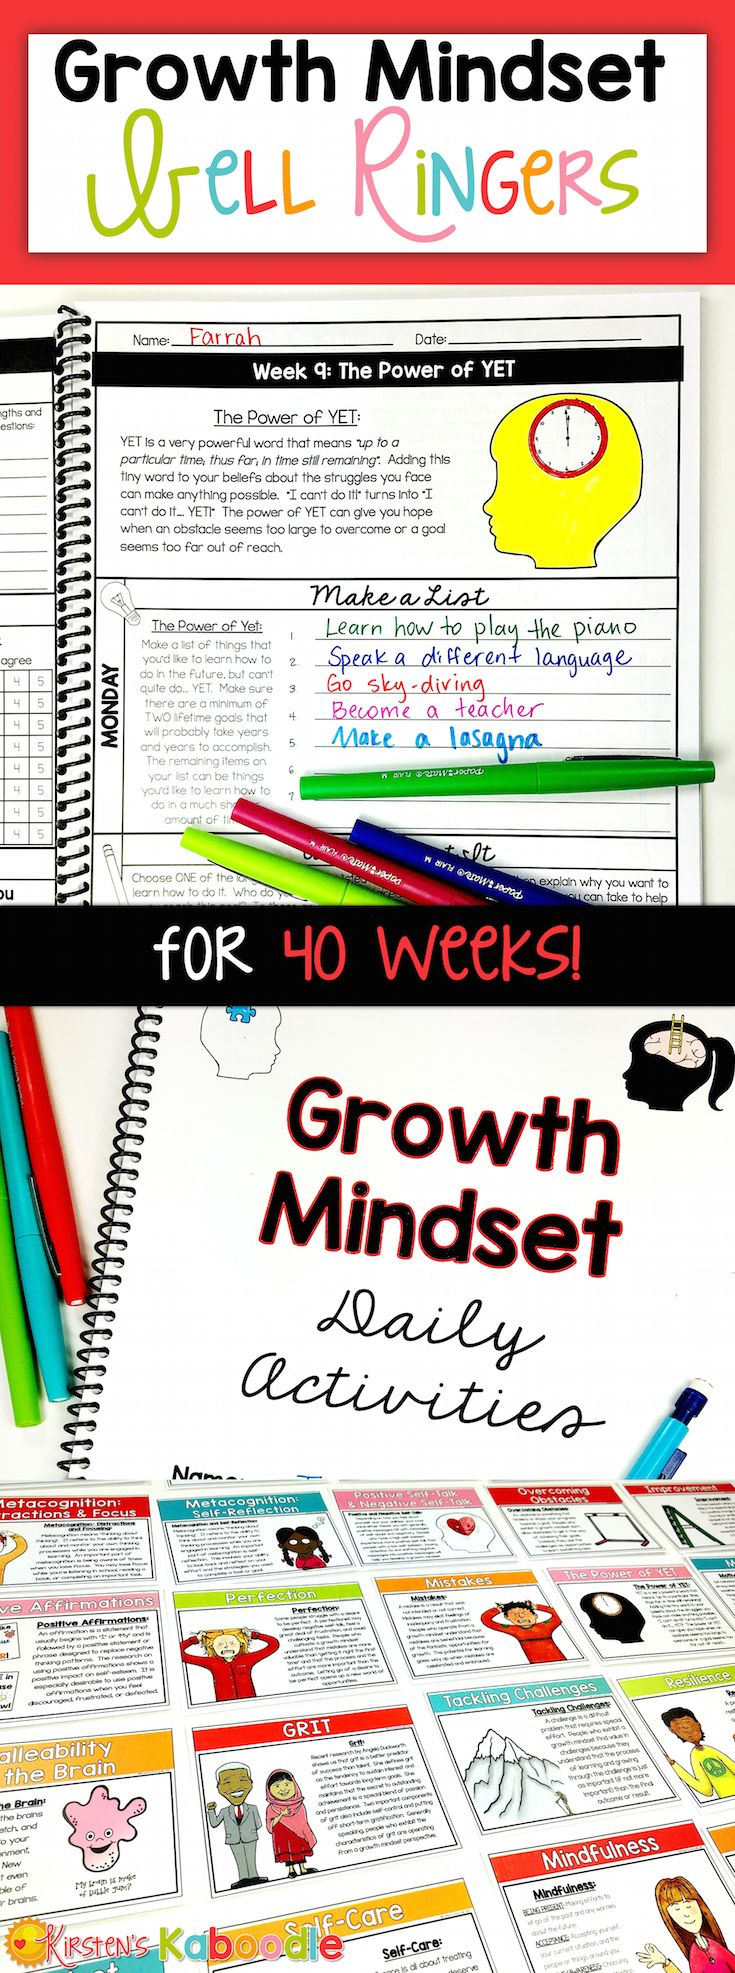 These DAILY growth mindset bell ringer activities are perfect for teachers who are looking for quick, easy to use, information-packed daily growth mindset instruction. These 200 activities, which span across 40 weeks, will give you everything you need to teach your 4TH GRADE AND UP classroom about all things growth mindset! #growthmindset #bellringers